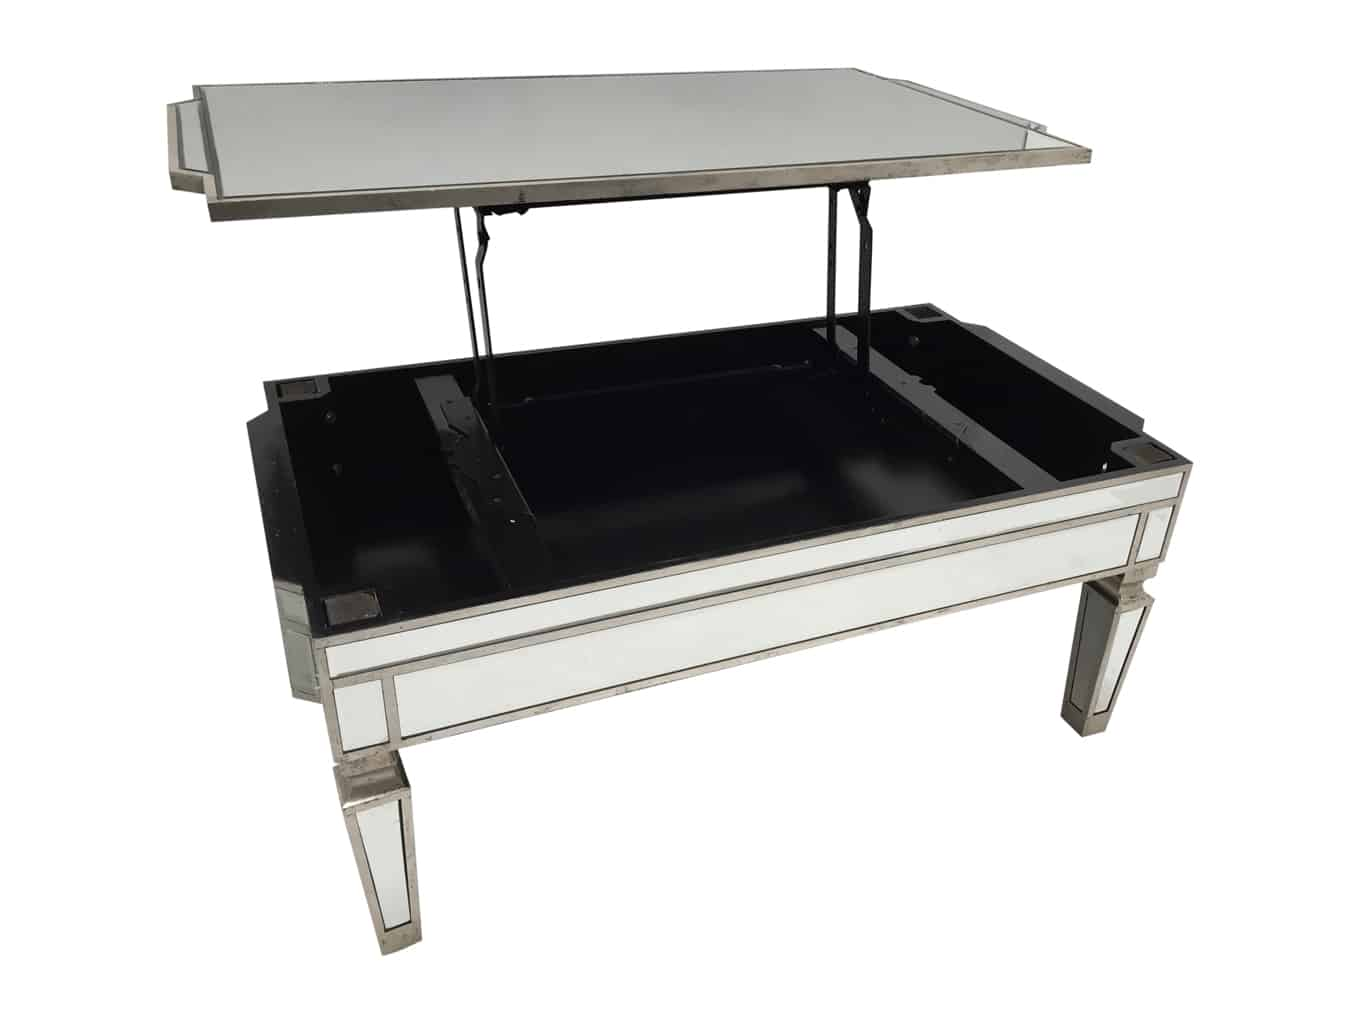 Mirrored coffee table with TV dinner lift